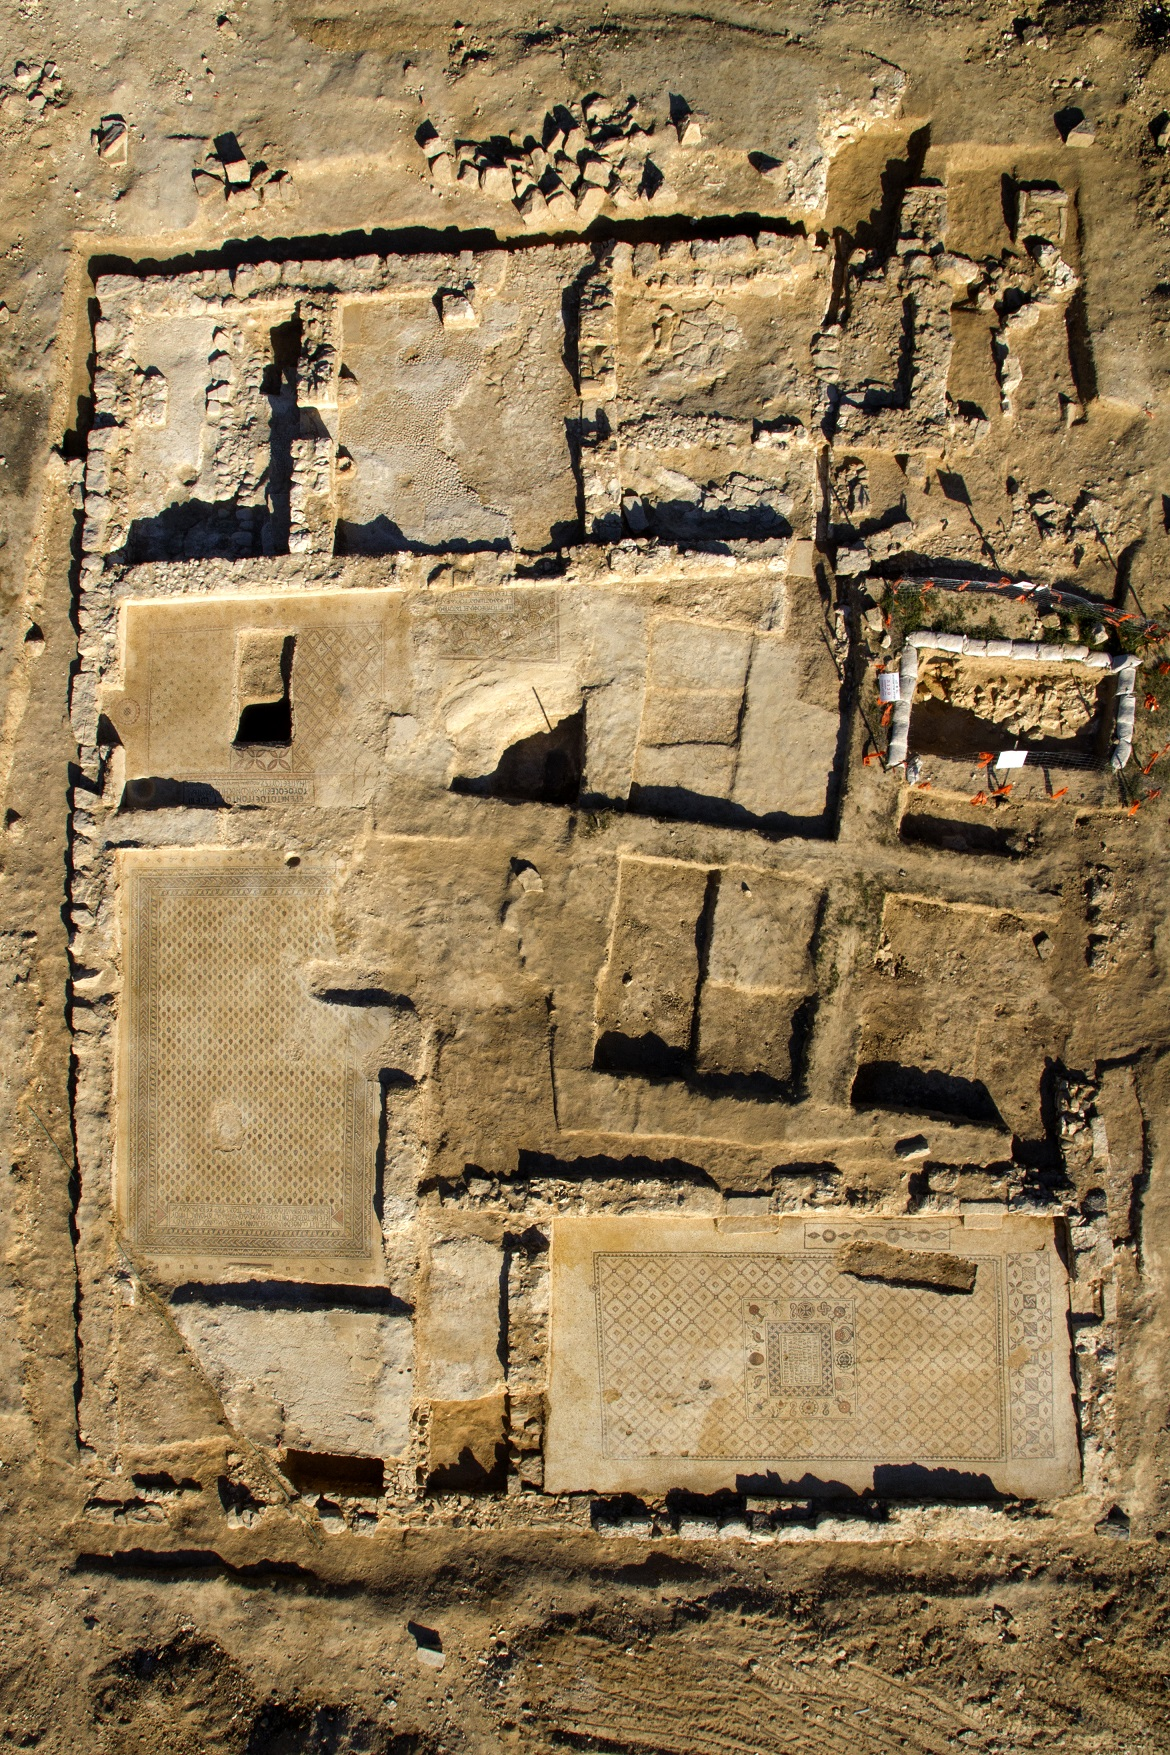 Skyview Company, courtesy of the Israel Antiquities Authority.